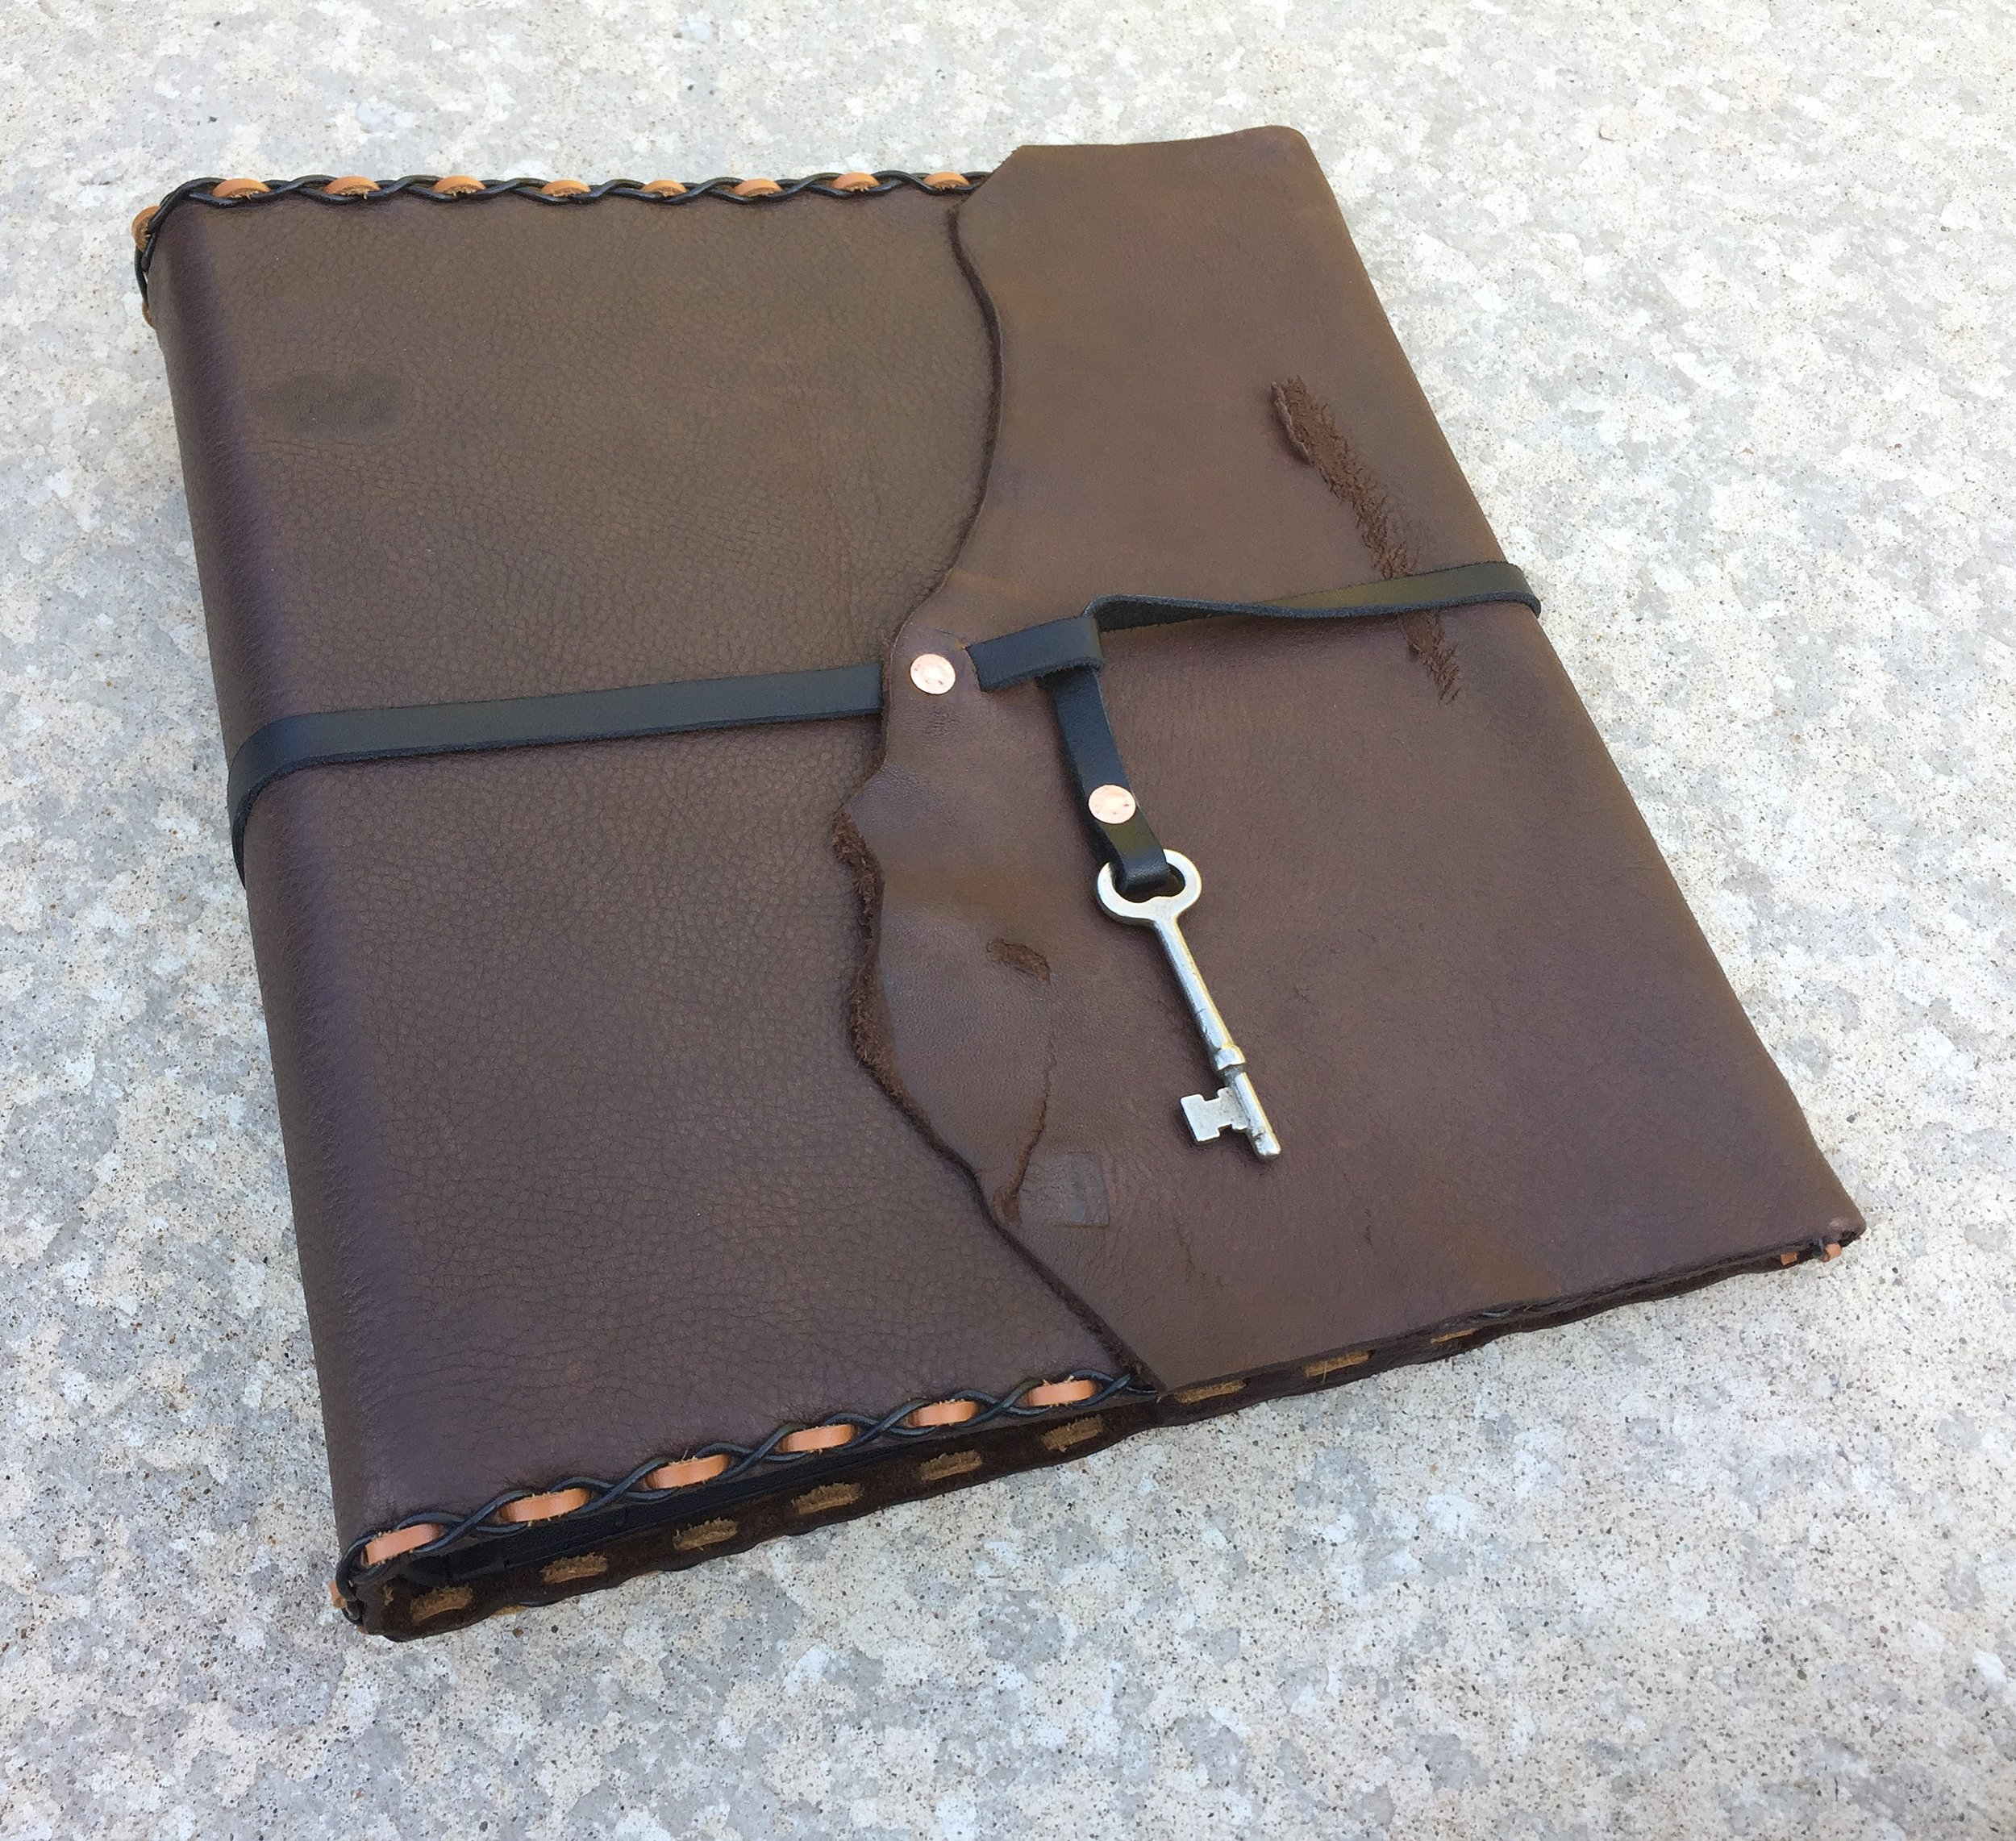 "FOR SALE - Handmade Leather Binder Cover  (above) 1 1/2"" three ring binder included. Antique key pendant.  $95  ( $19  shipping within the US & sales tax applies to UT residence). Custom Heat Engraving can be added! Email me at:  CircleM@outlook.com"